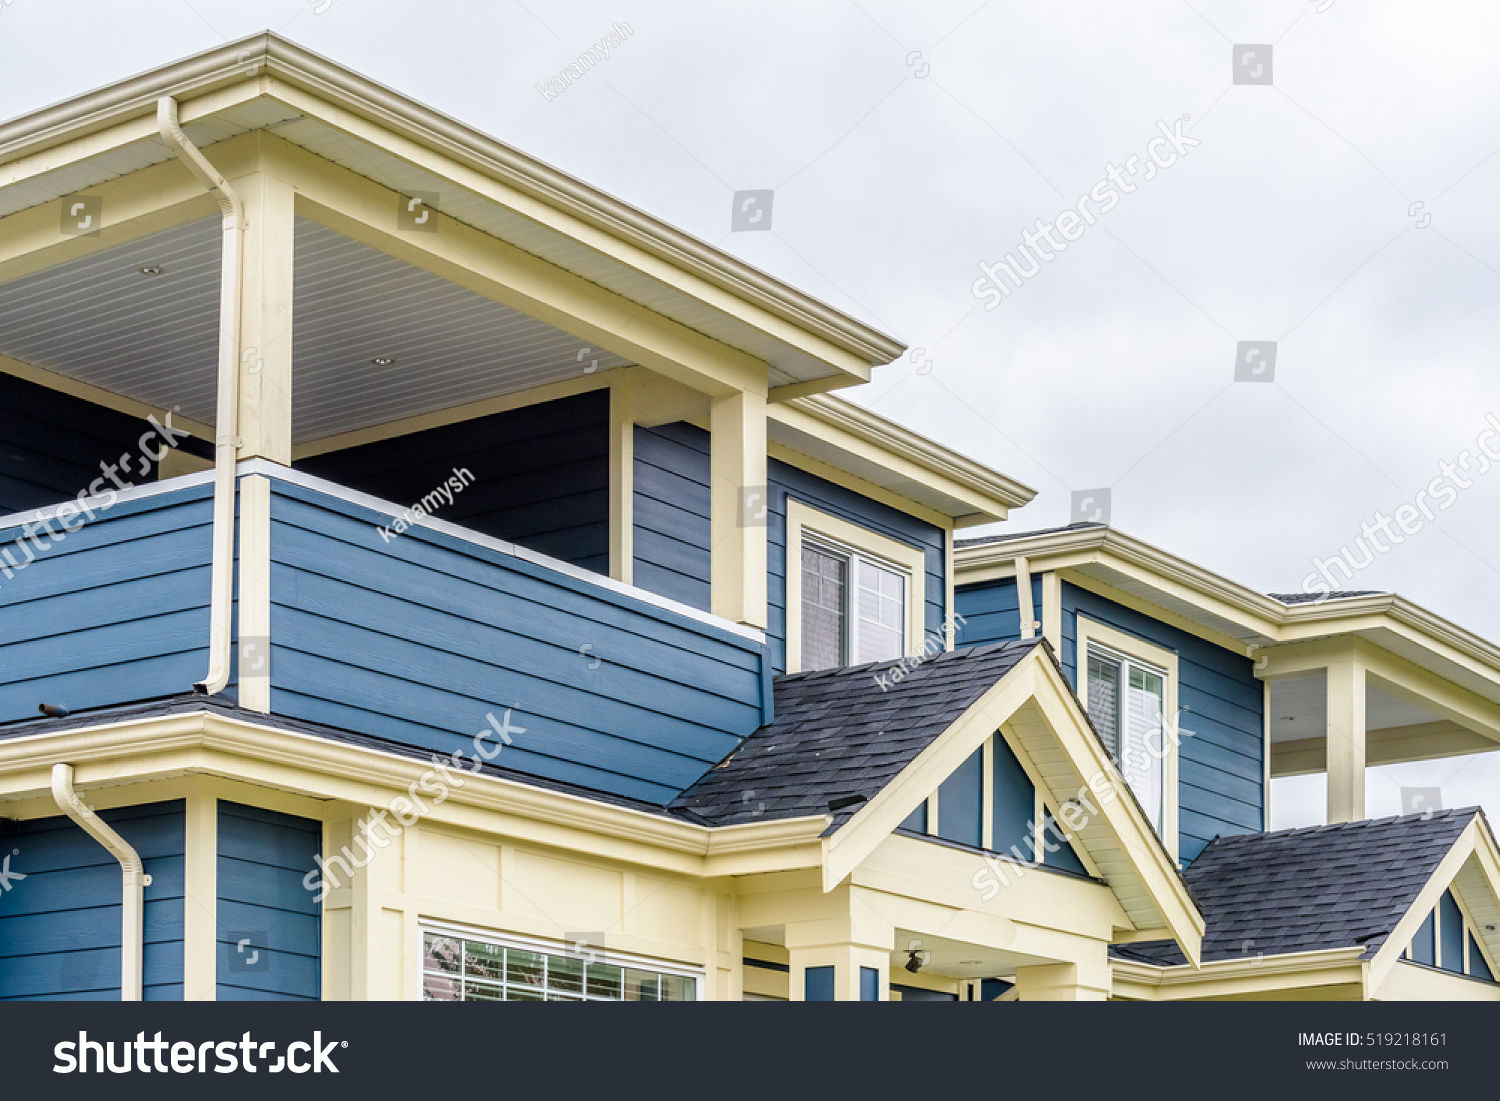 top house apartment building nice window stock photo 519218161 shutterstock. Black Bedroom Furniture Sets. Home Design Ideas